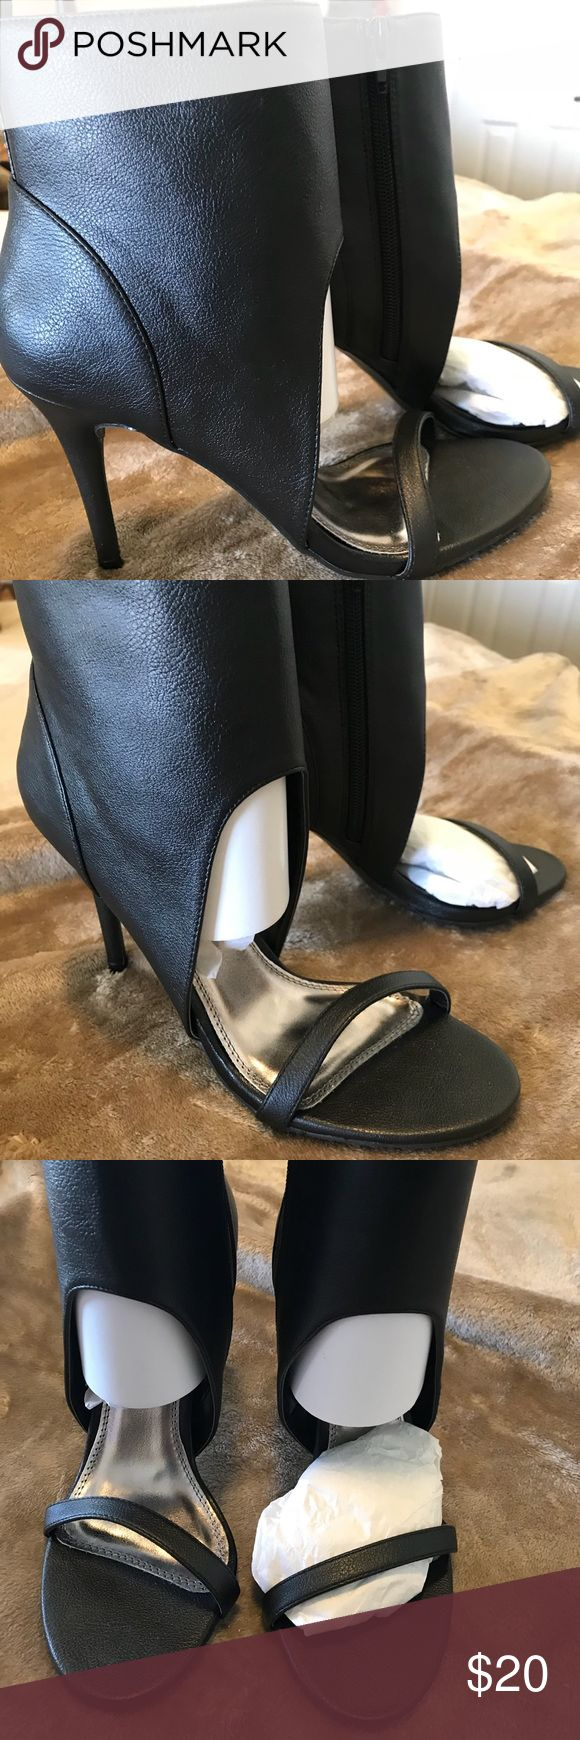 """Shoe Dazzle Open Toe Ankle Bootie!!! Shoe Dazzle Black open toe Ankle Bootie is a size 8.5 with an approx 3.5"""" Heel. It has side zipper closures. It is a faux leather material. Only worn once and nearly new! Shoe Dazzle Shoes Ankle Boots & Booties"""